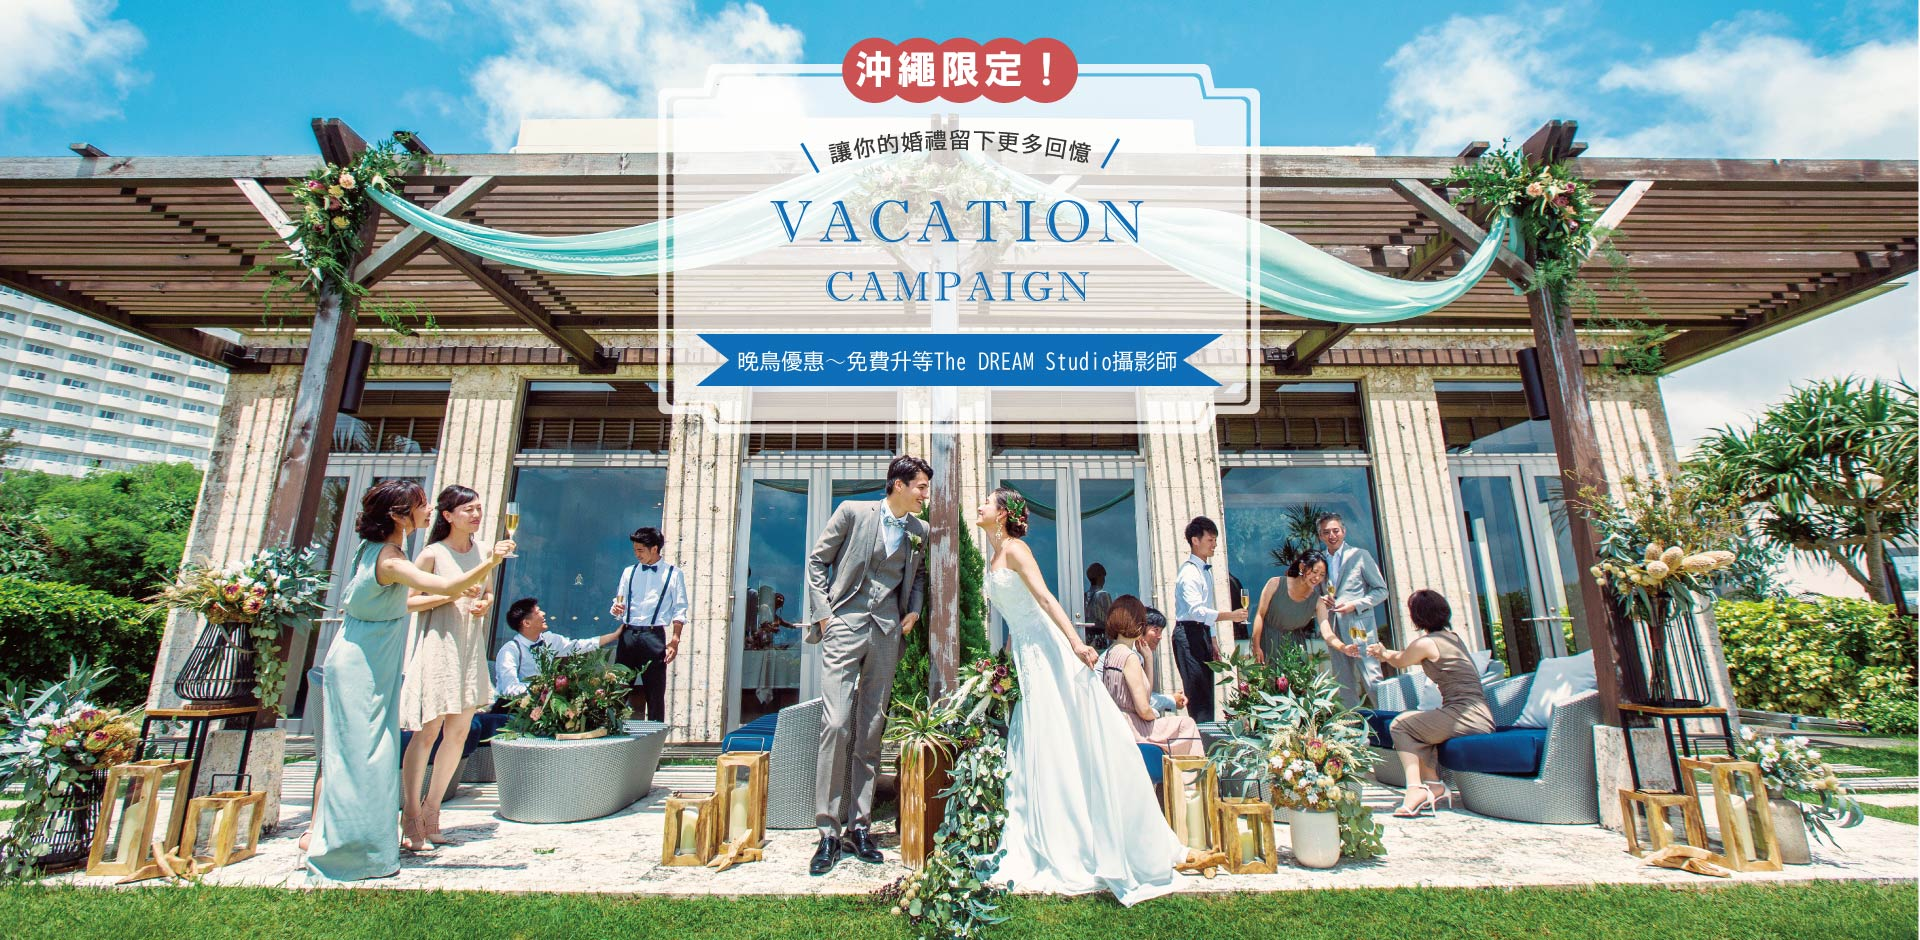 Summer Vacation CAMPAIGN in Okinawa !